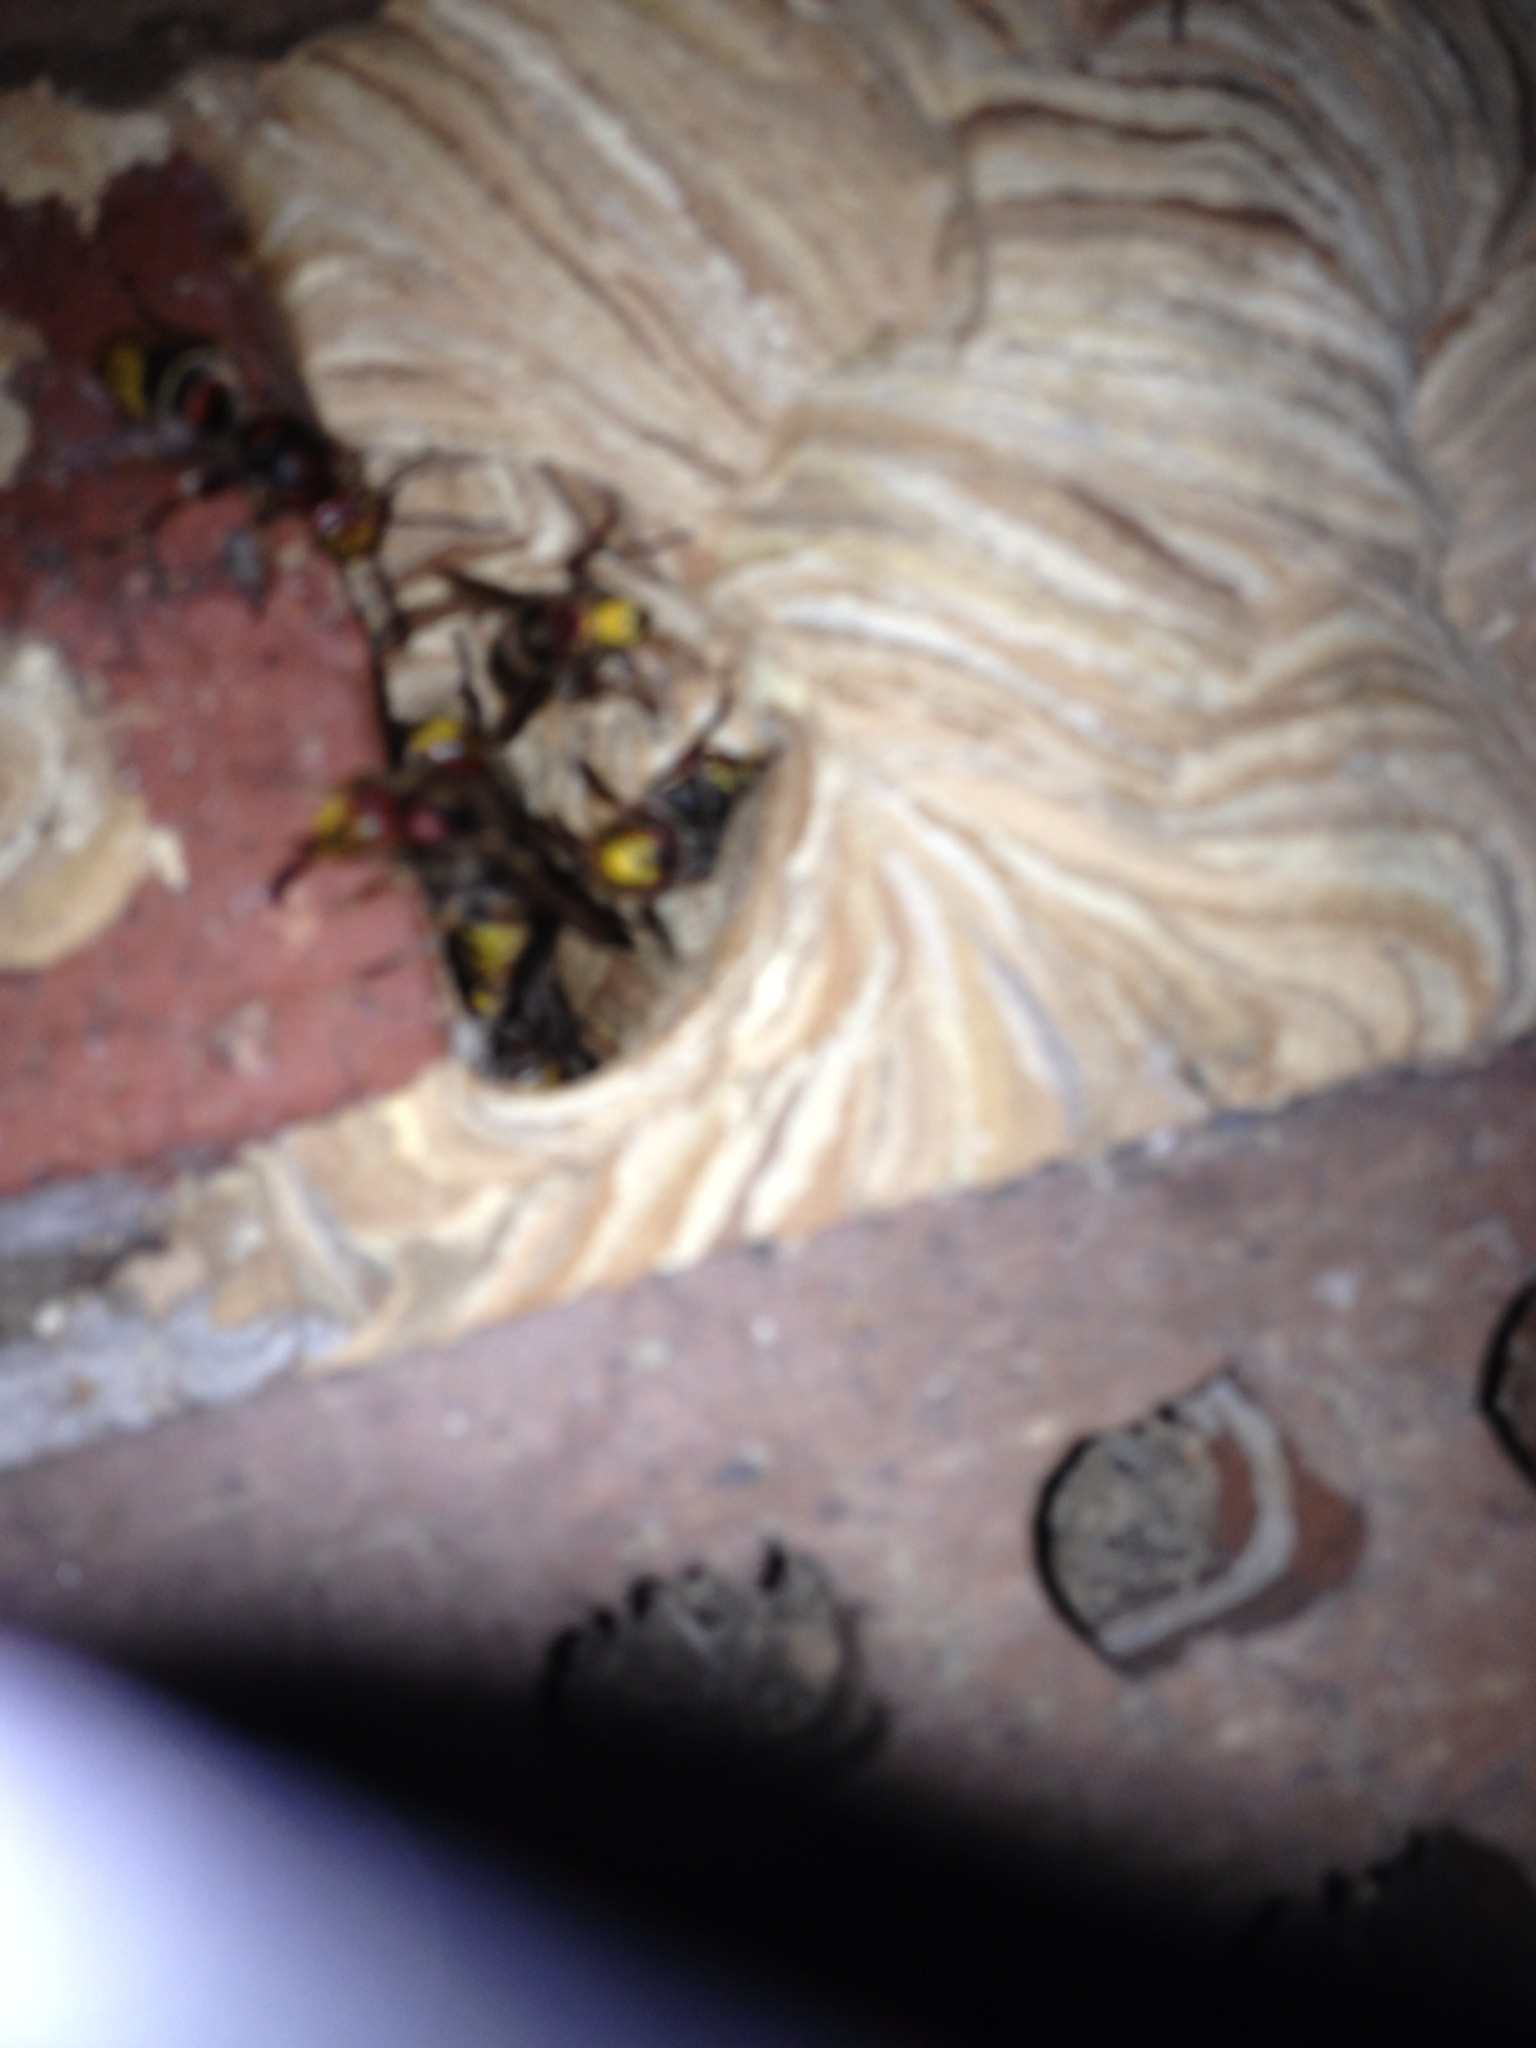 how to kill hornets nest in ground